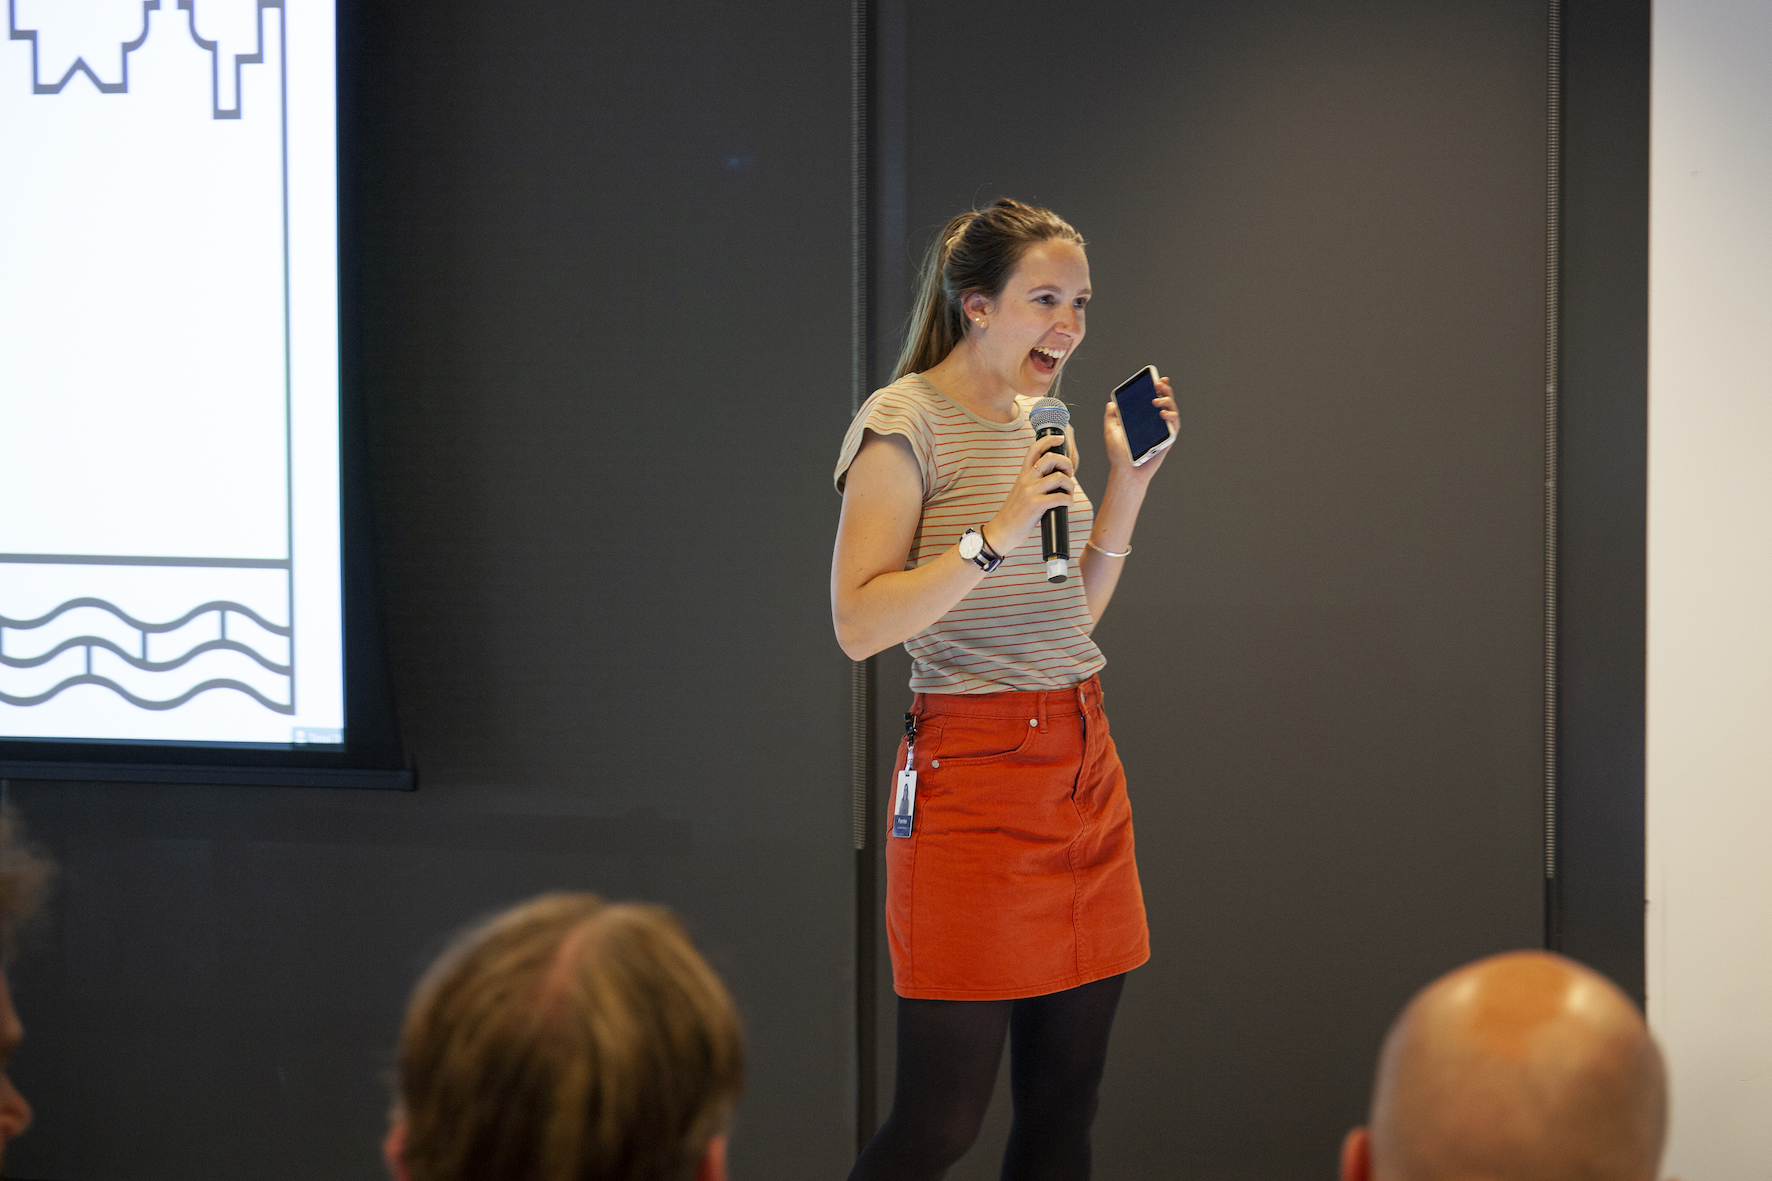 A photo of Femke presenting on stage